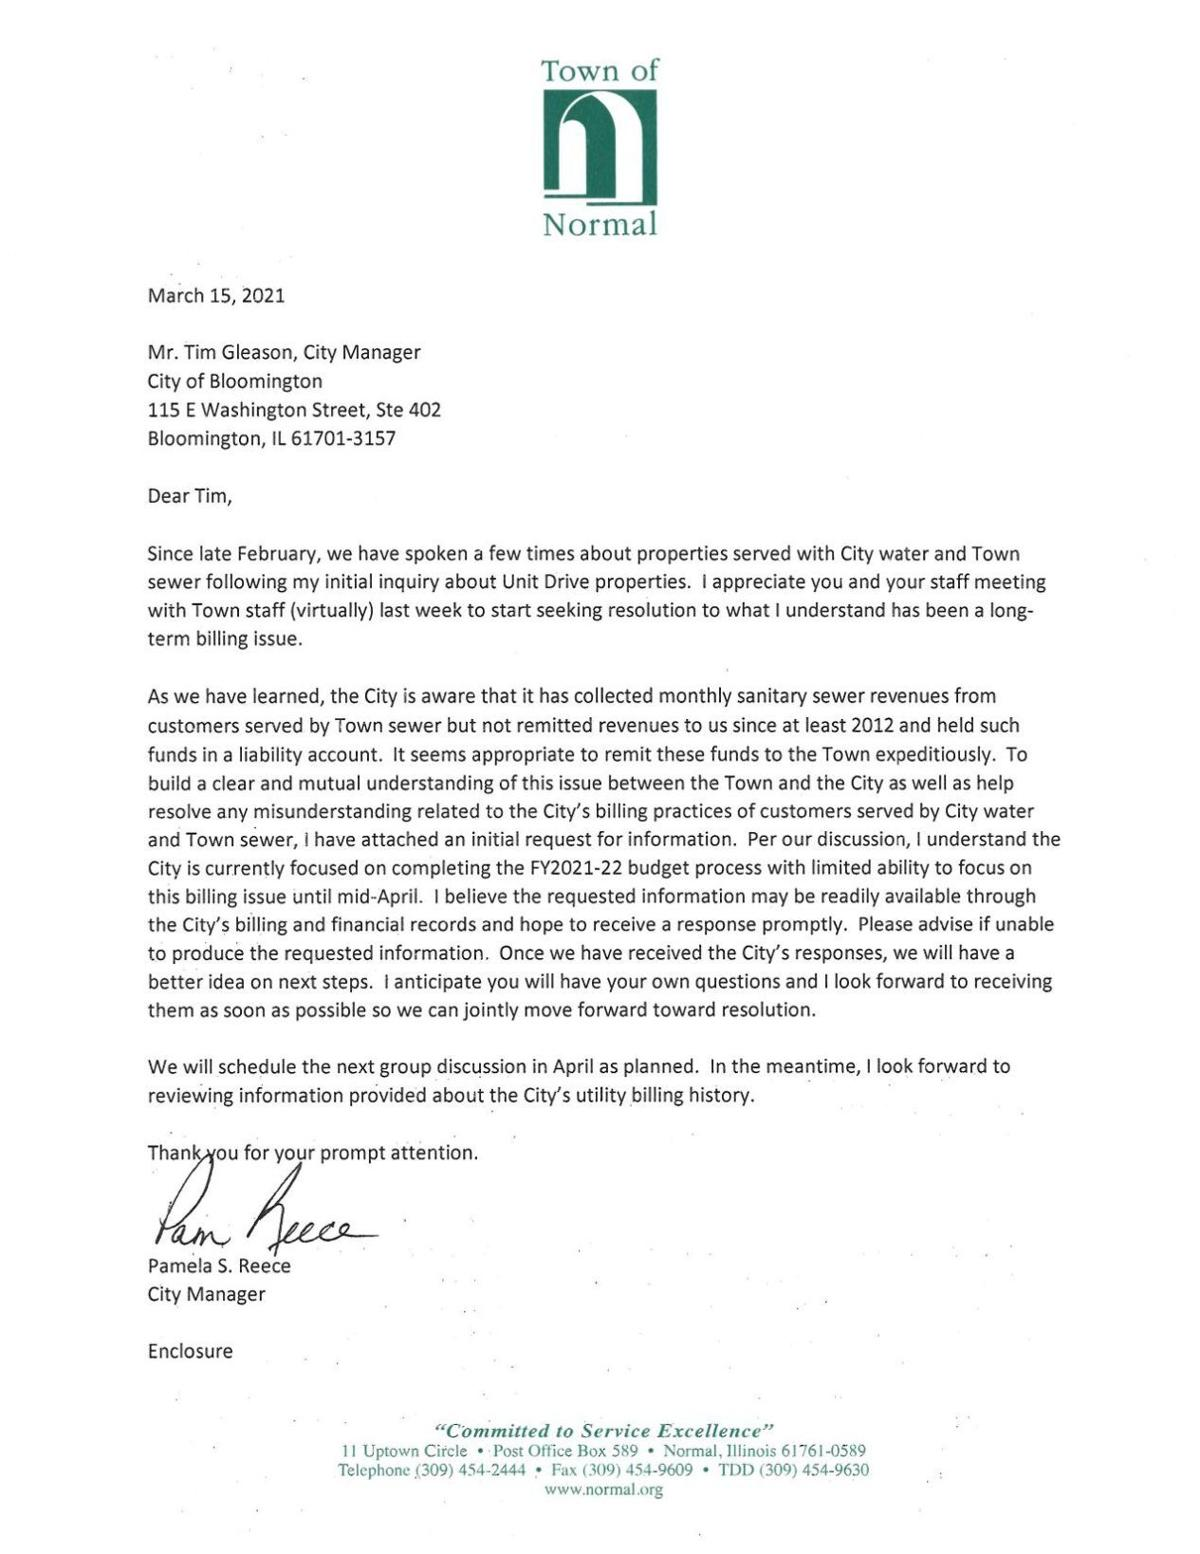 Letter sent to City Manager Tim Gleason, March 15